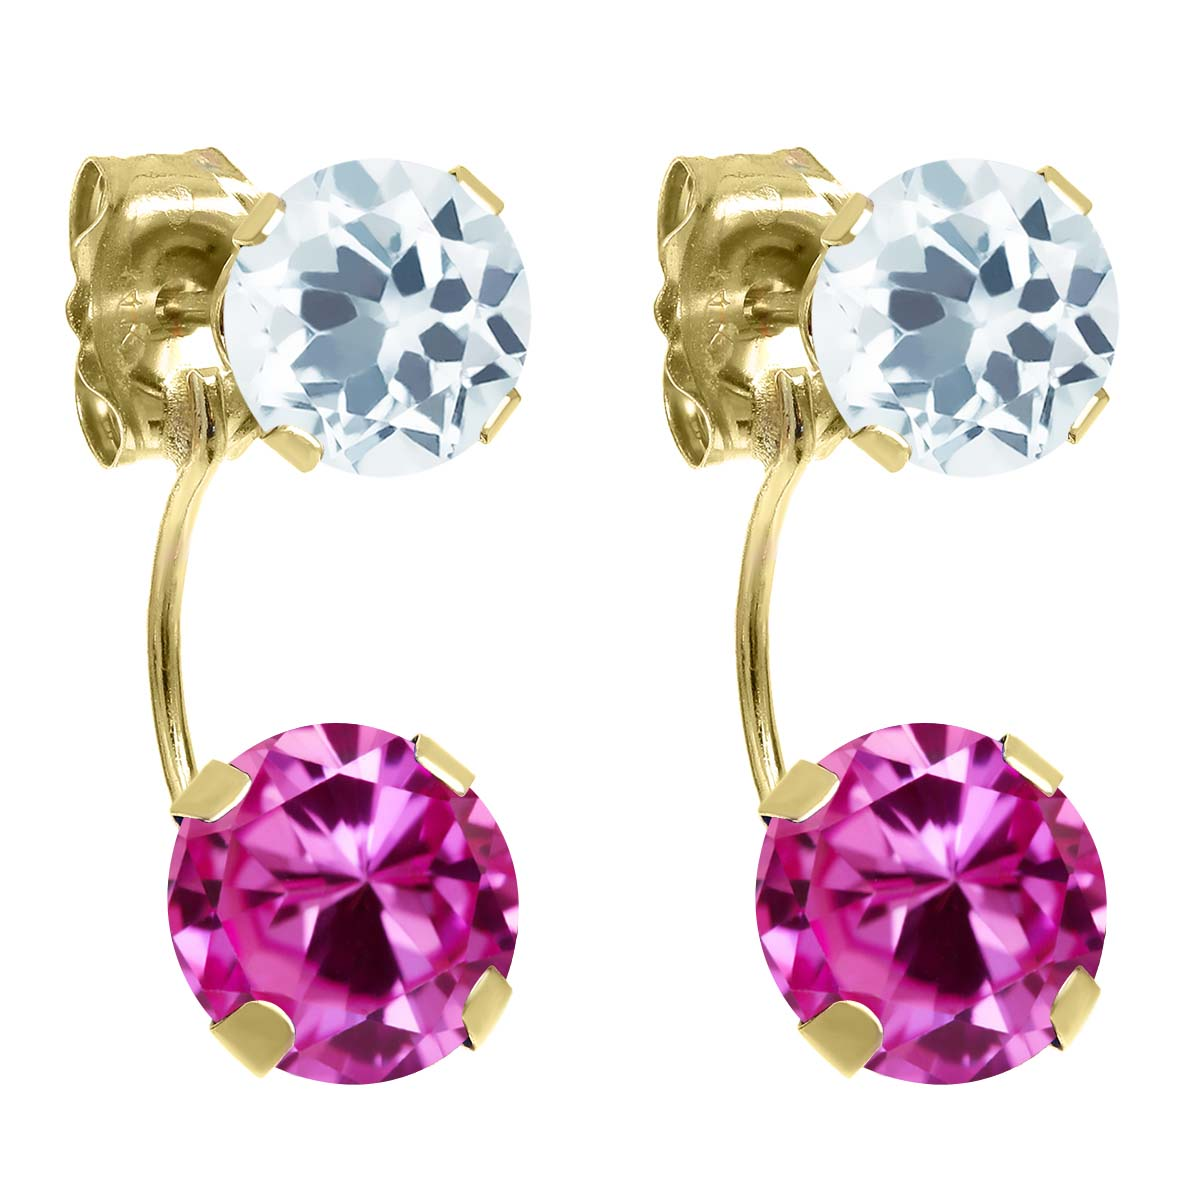 2.90 Ct Round Pink Created Sapphire Sky Blue Aquamarine 14K Yellow Gold Earrings by